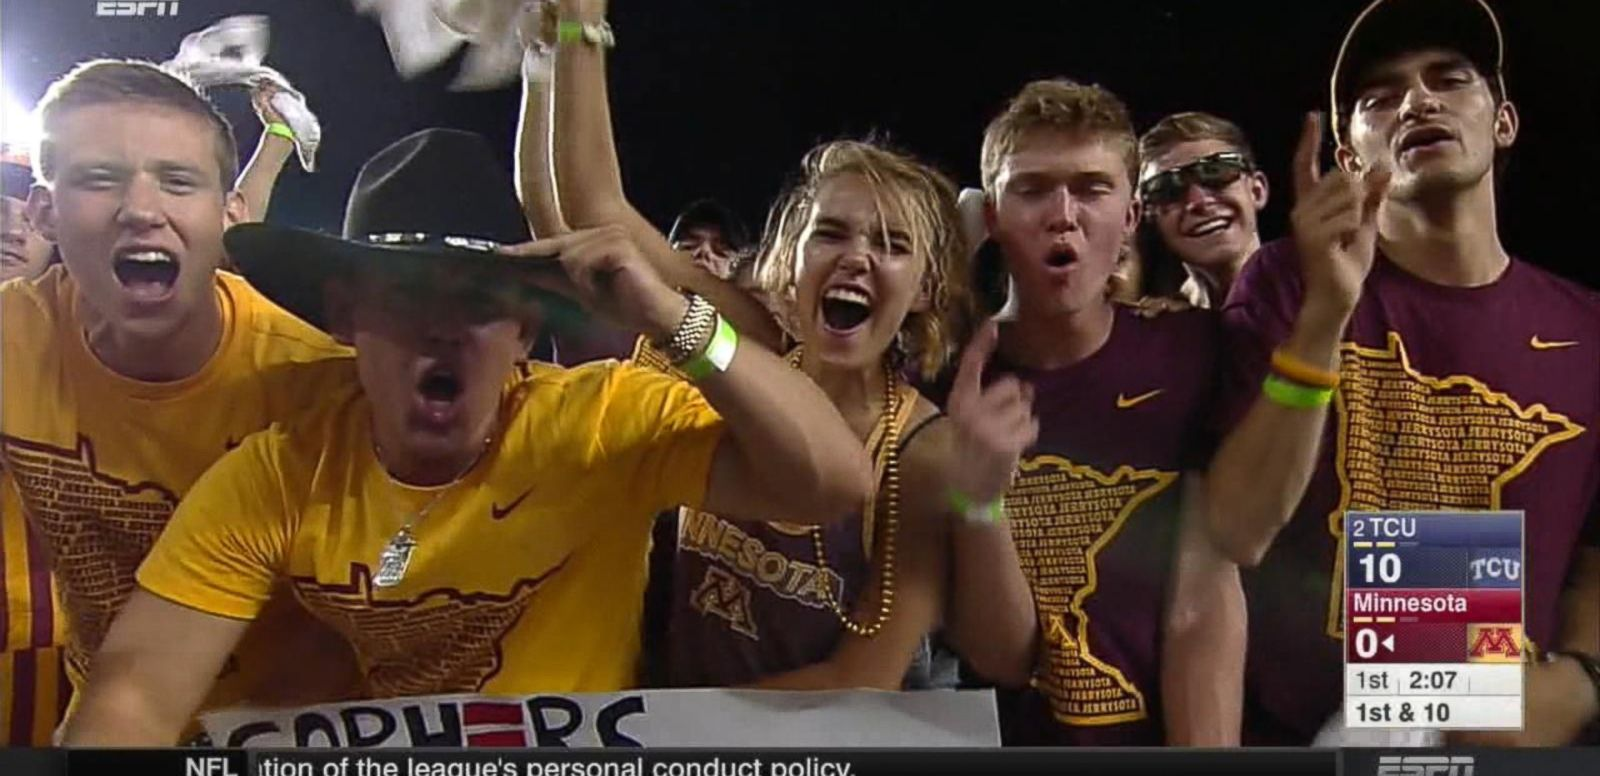 VIDEO: Sports Fans Around the Country Celebrate 'National College Colors Day'